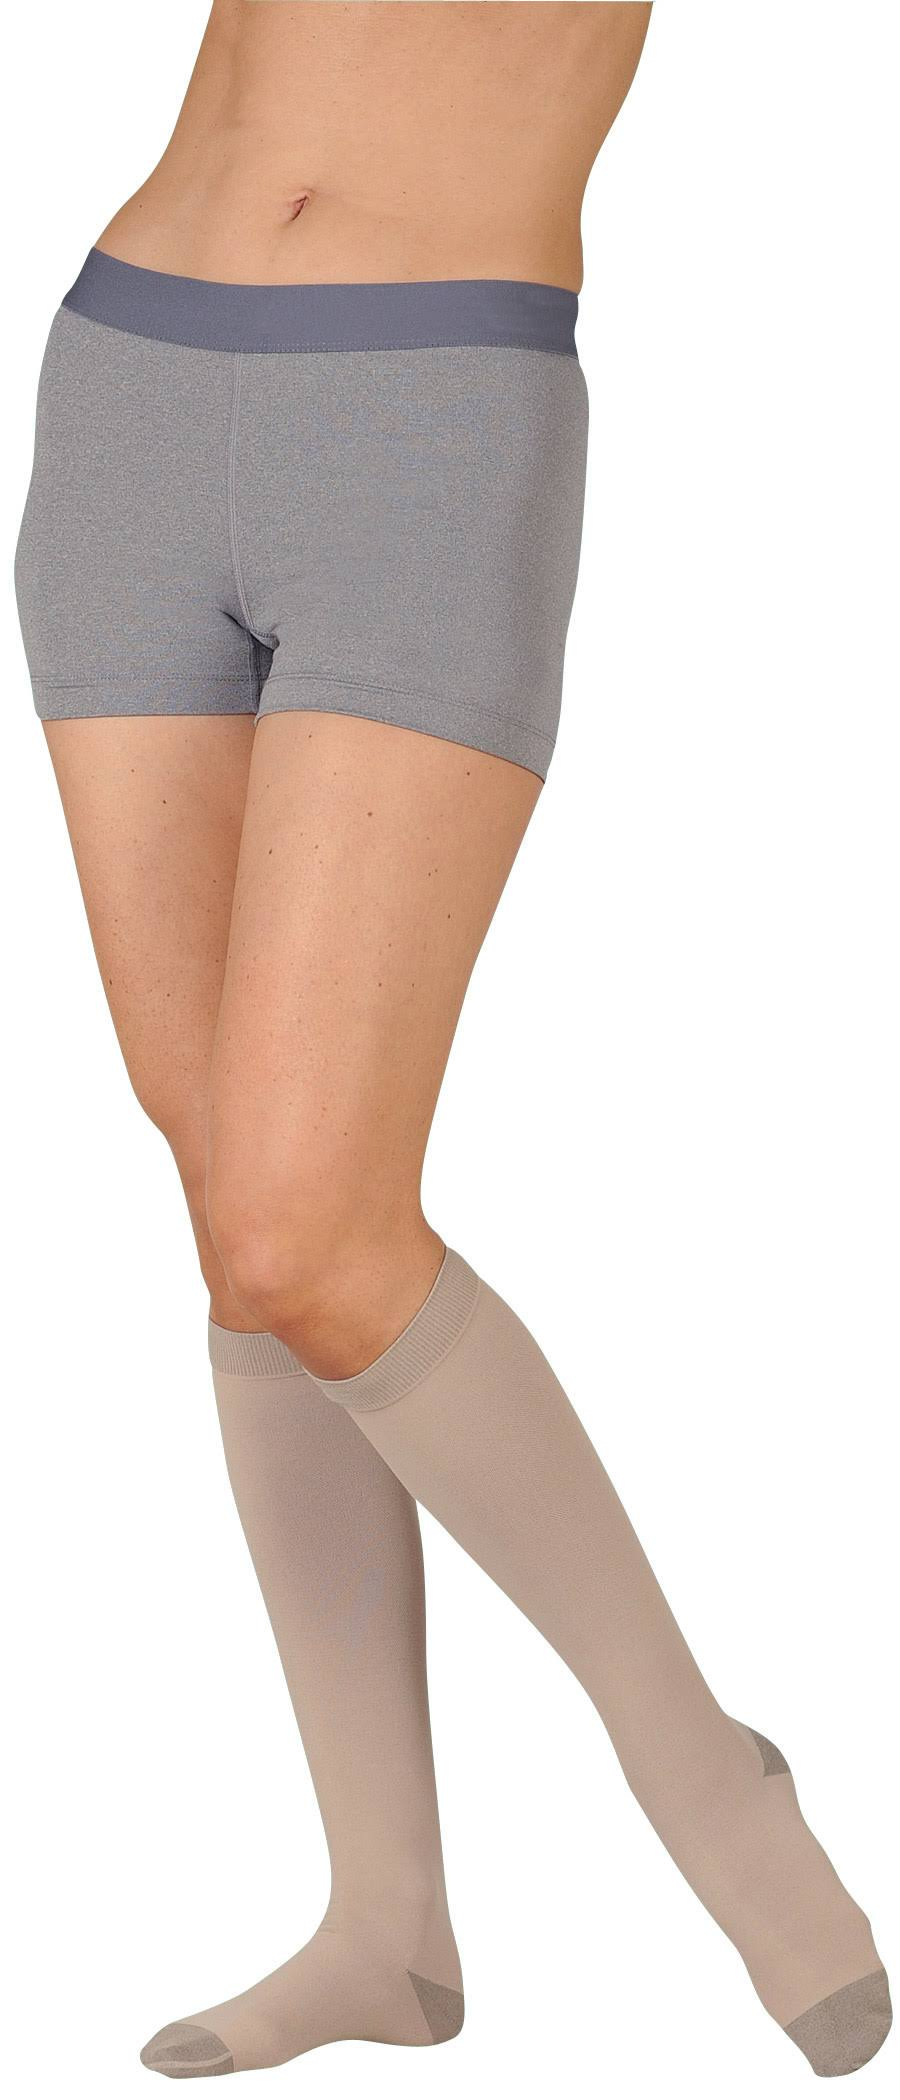 Juzo Silver Open Toe Thigh High with Silicone Dot Band - 20-30mmHg, Size II